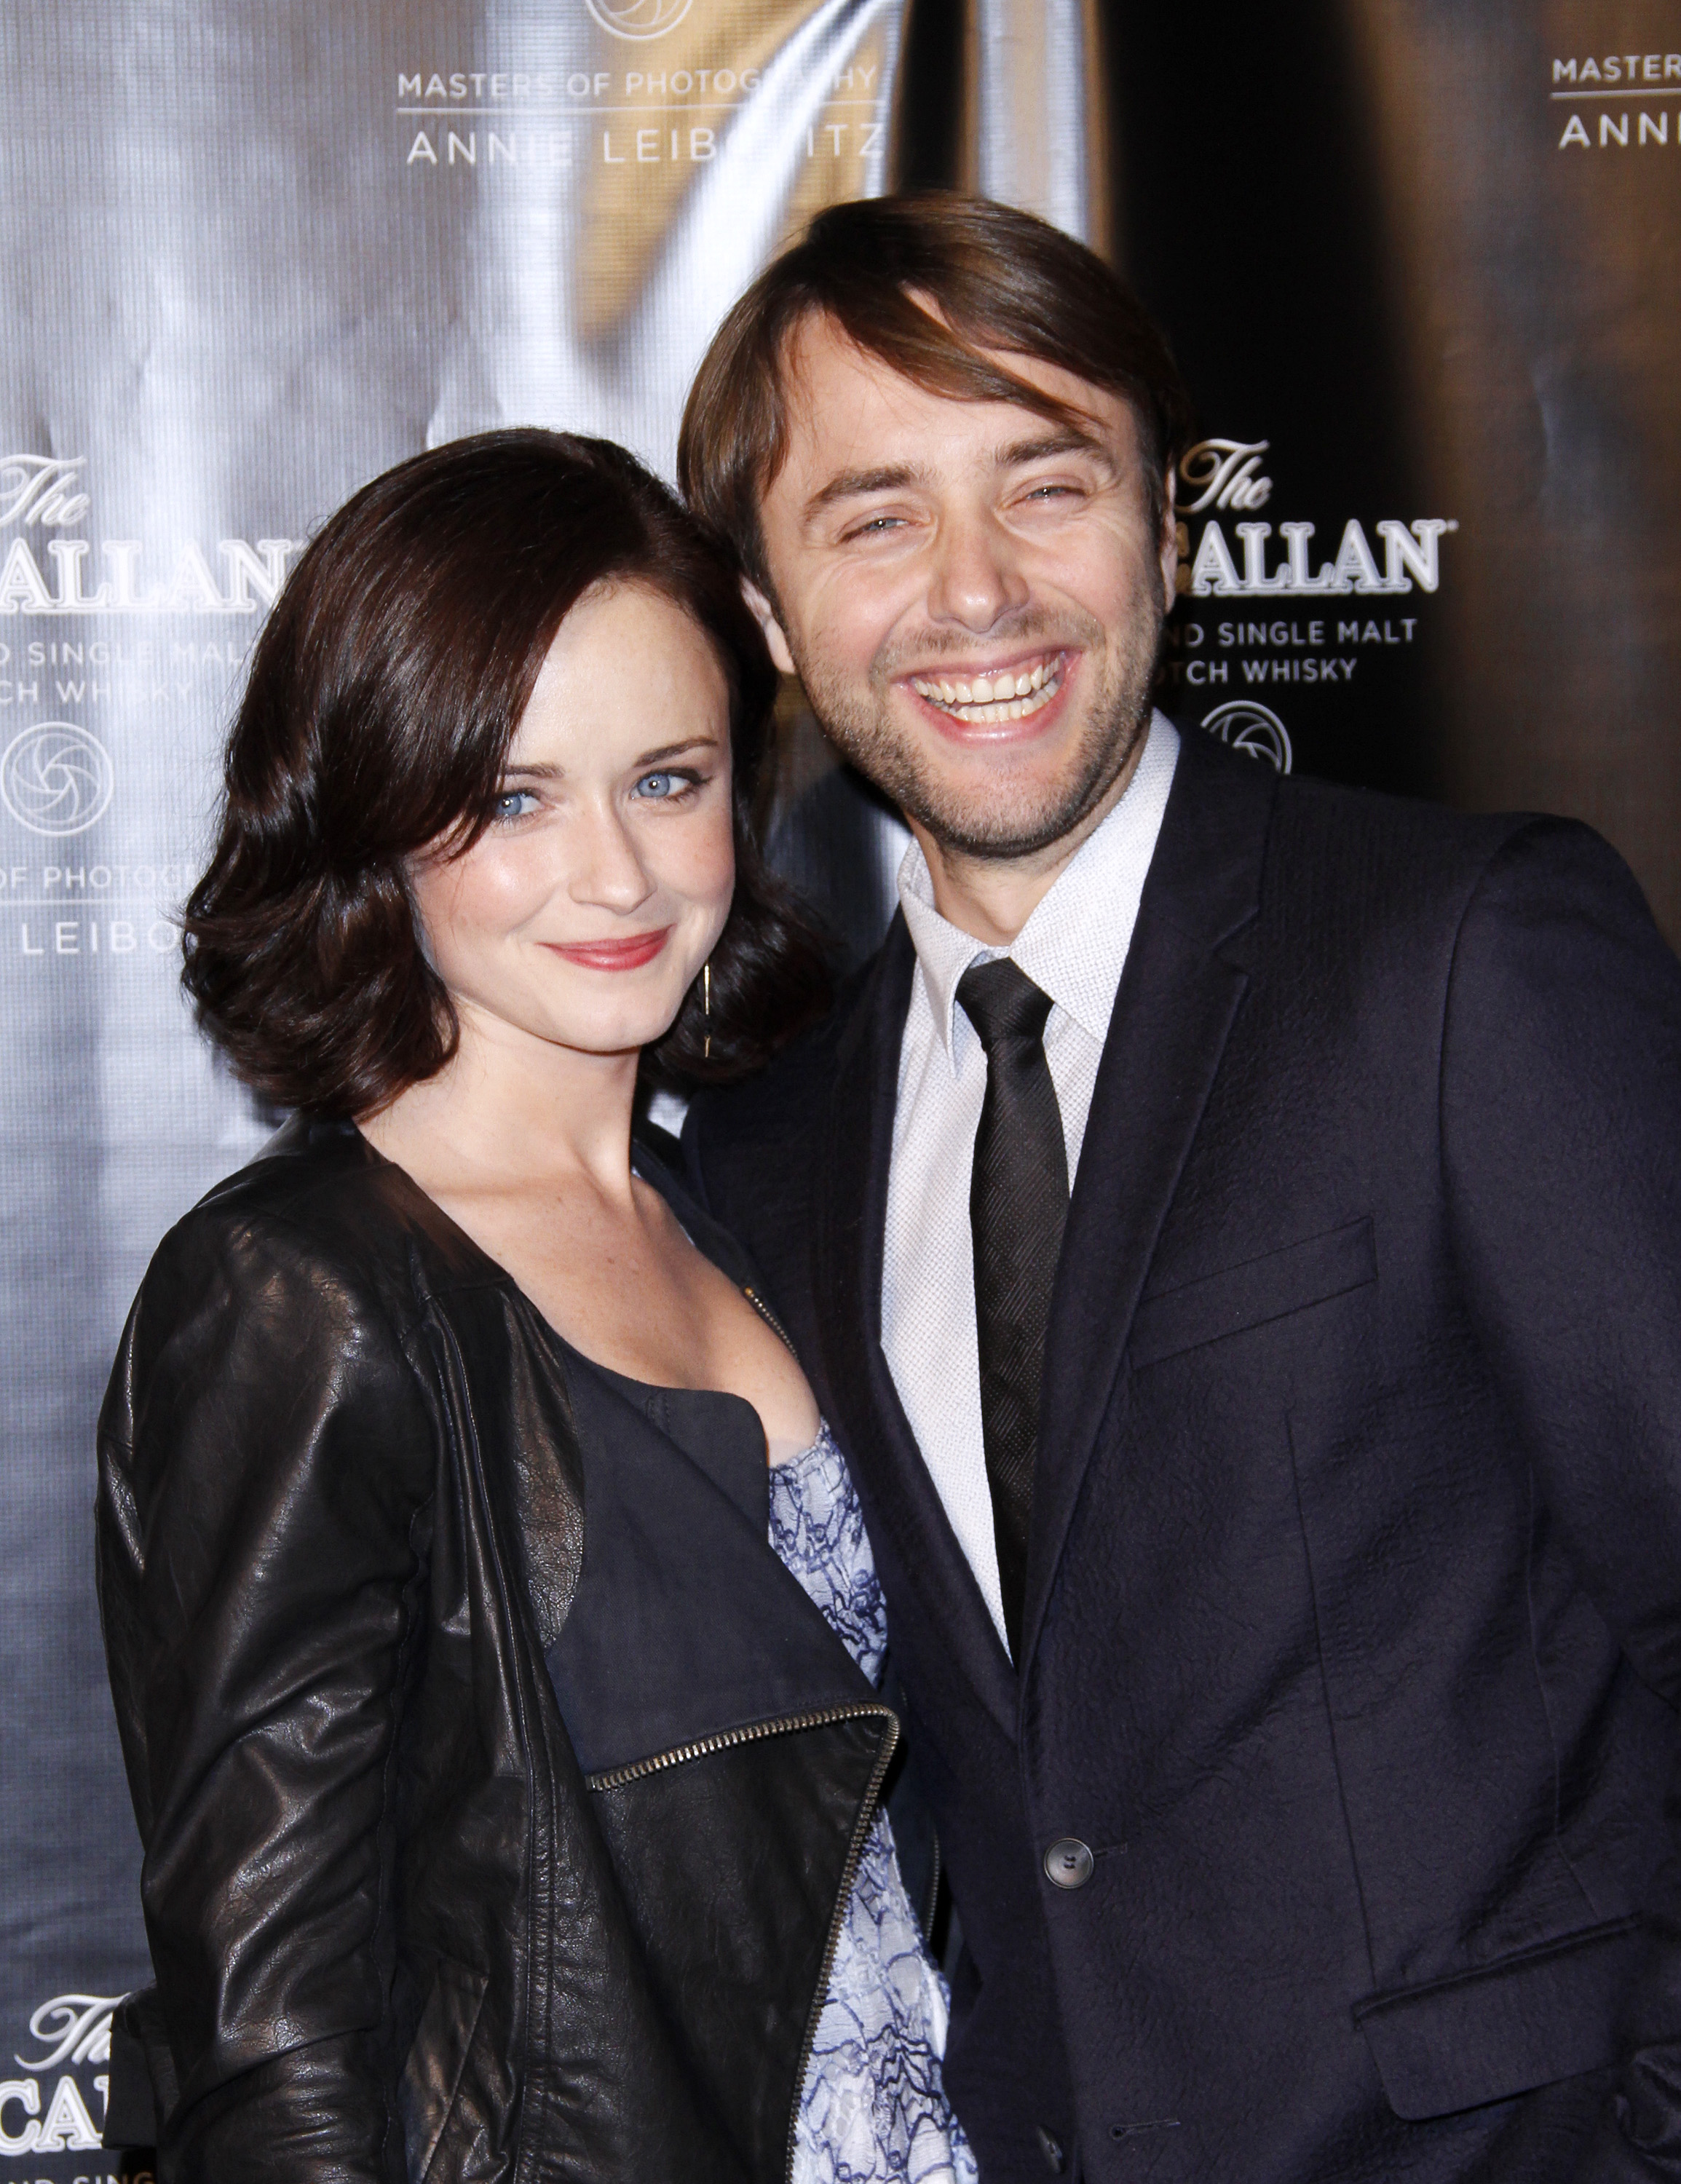 Alexis Bledel - The Macallan Masters Of Photography Series Launch - NYC - 101012_014.jpg